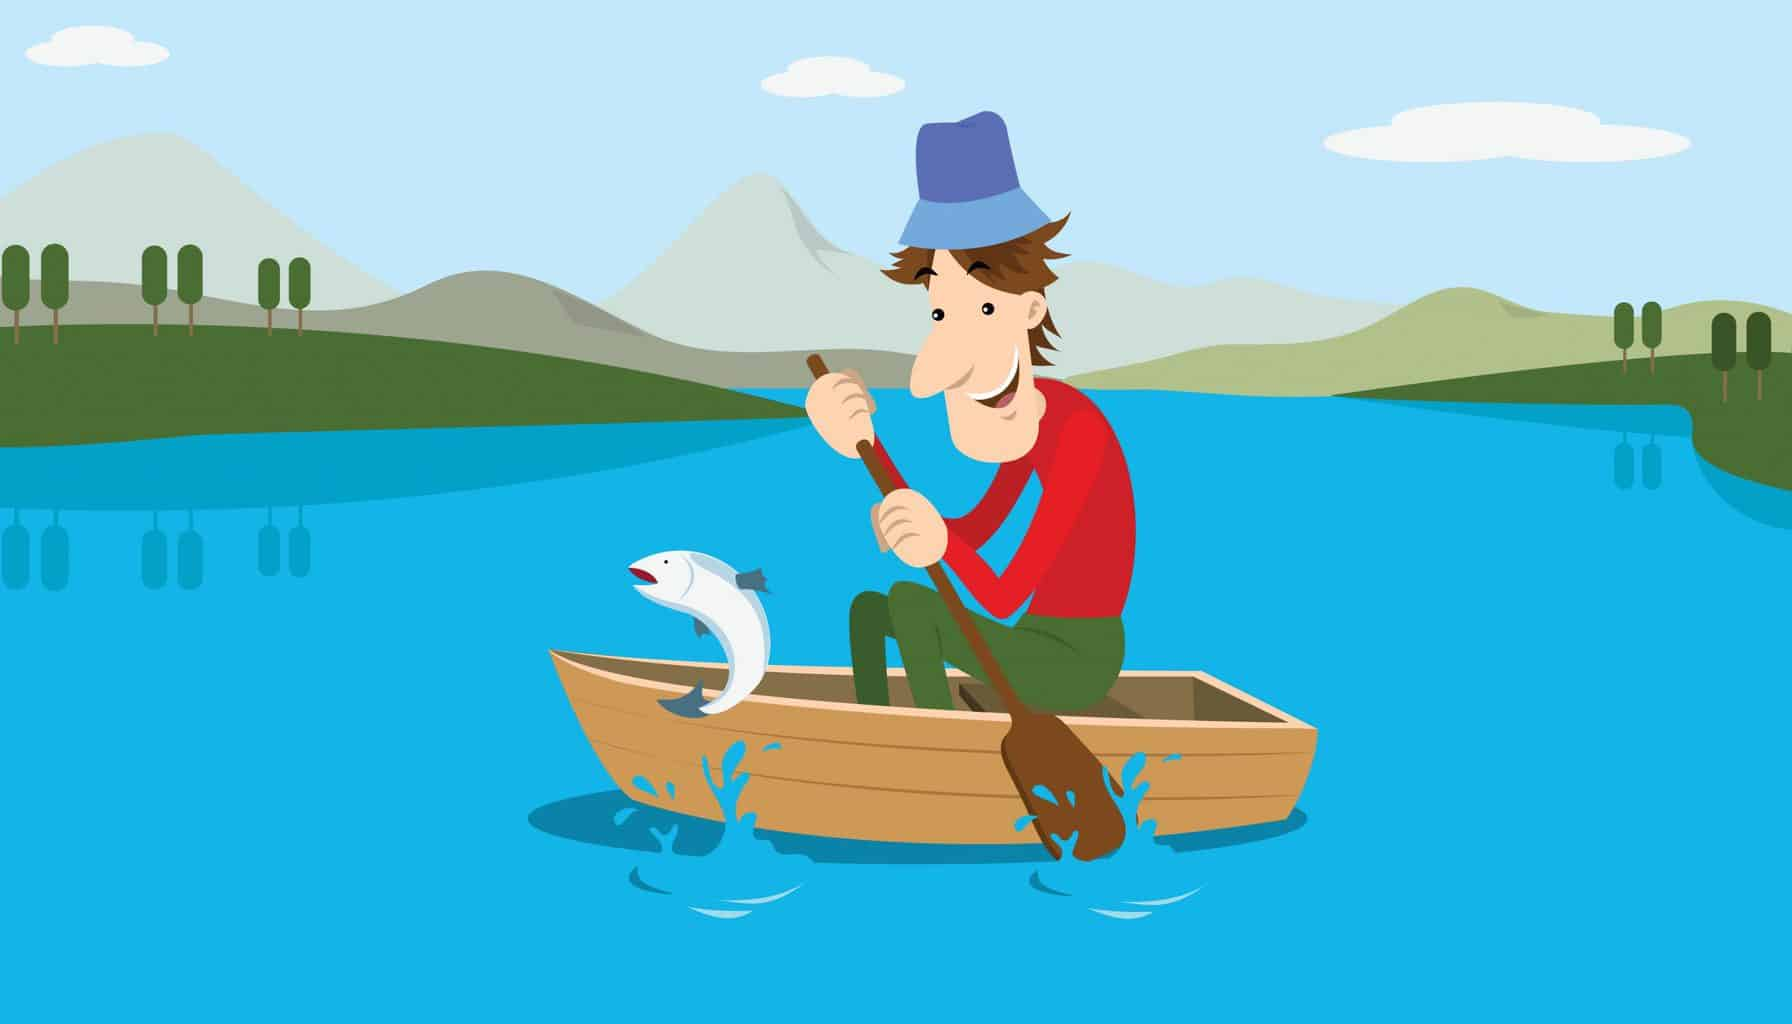 Best Time to Go Fishing - A comic about a man in a boat on a lake being there at the right time to see a fish jumping out of the water